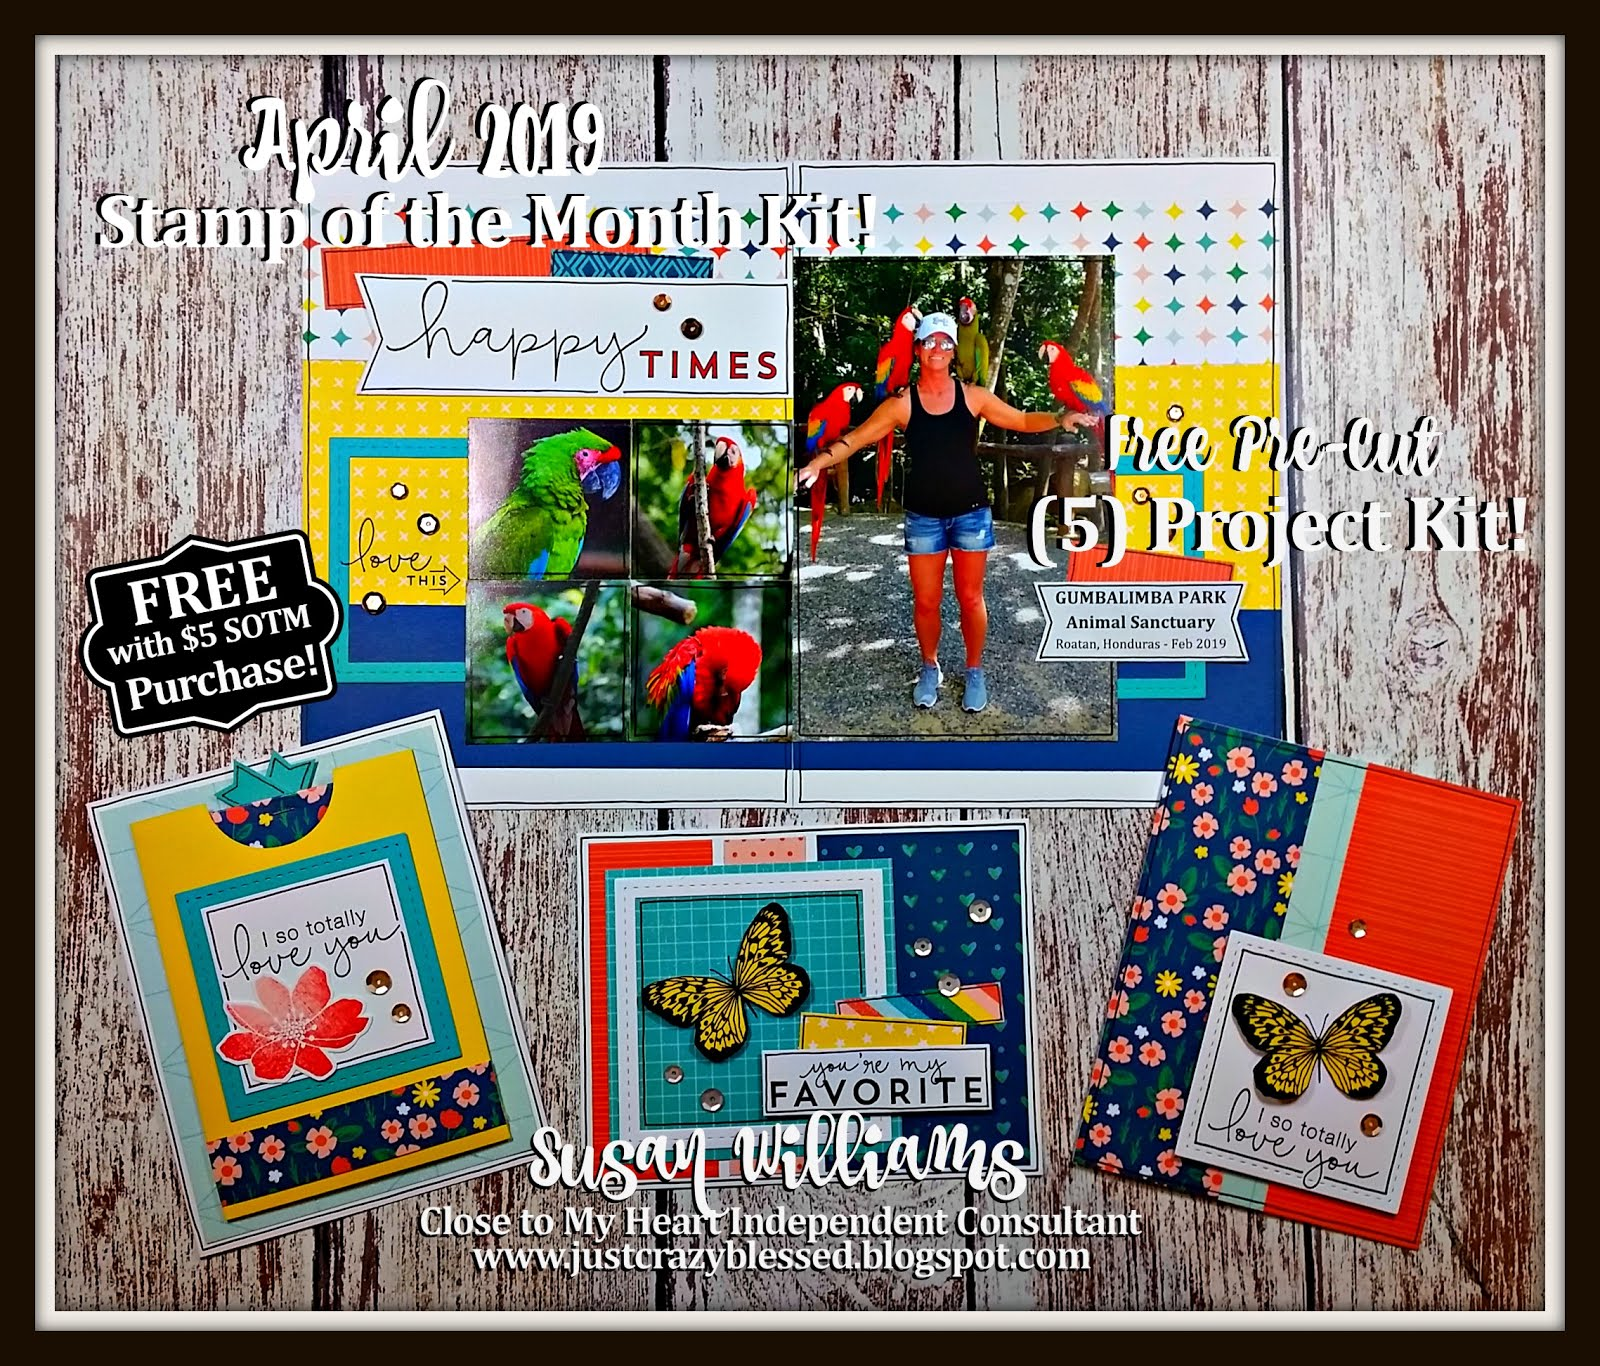 April 2019 Stamp of the Month Workshop!